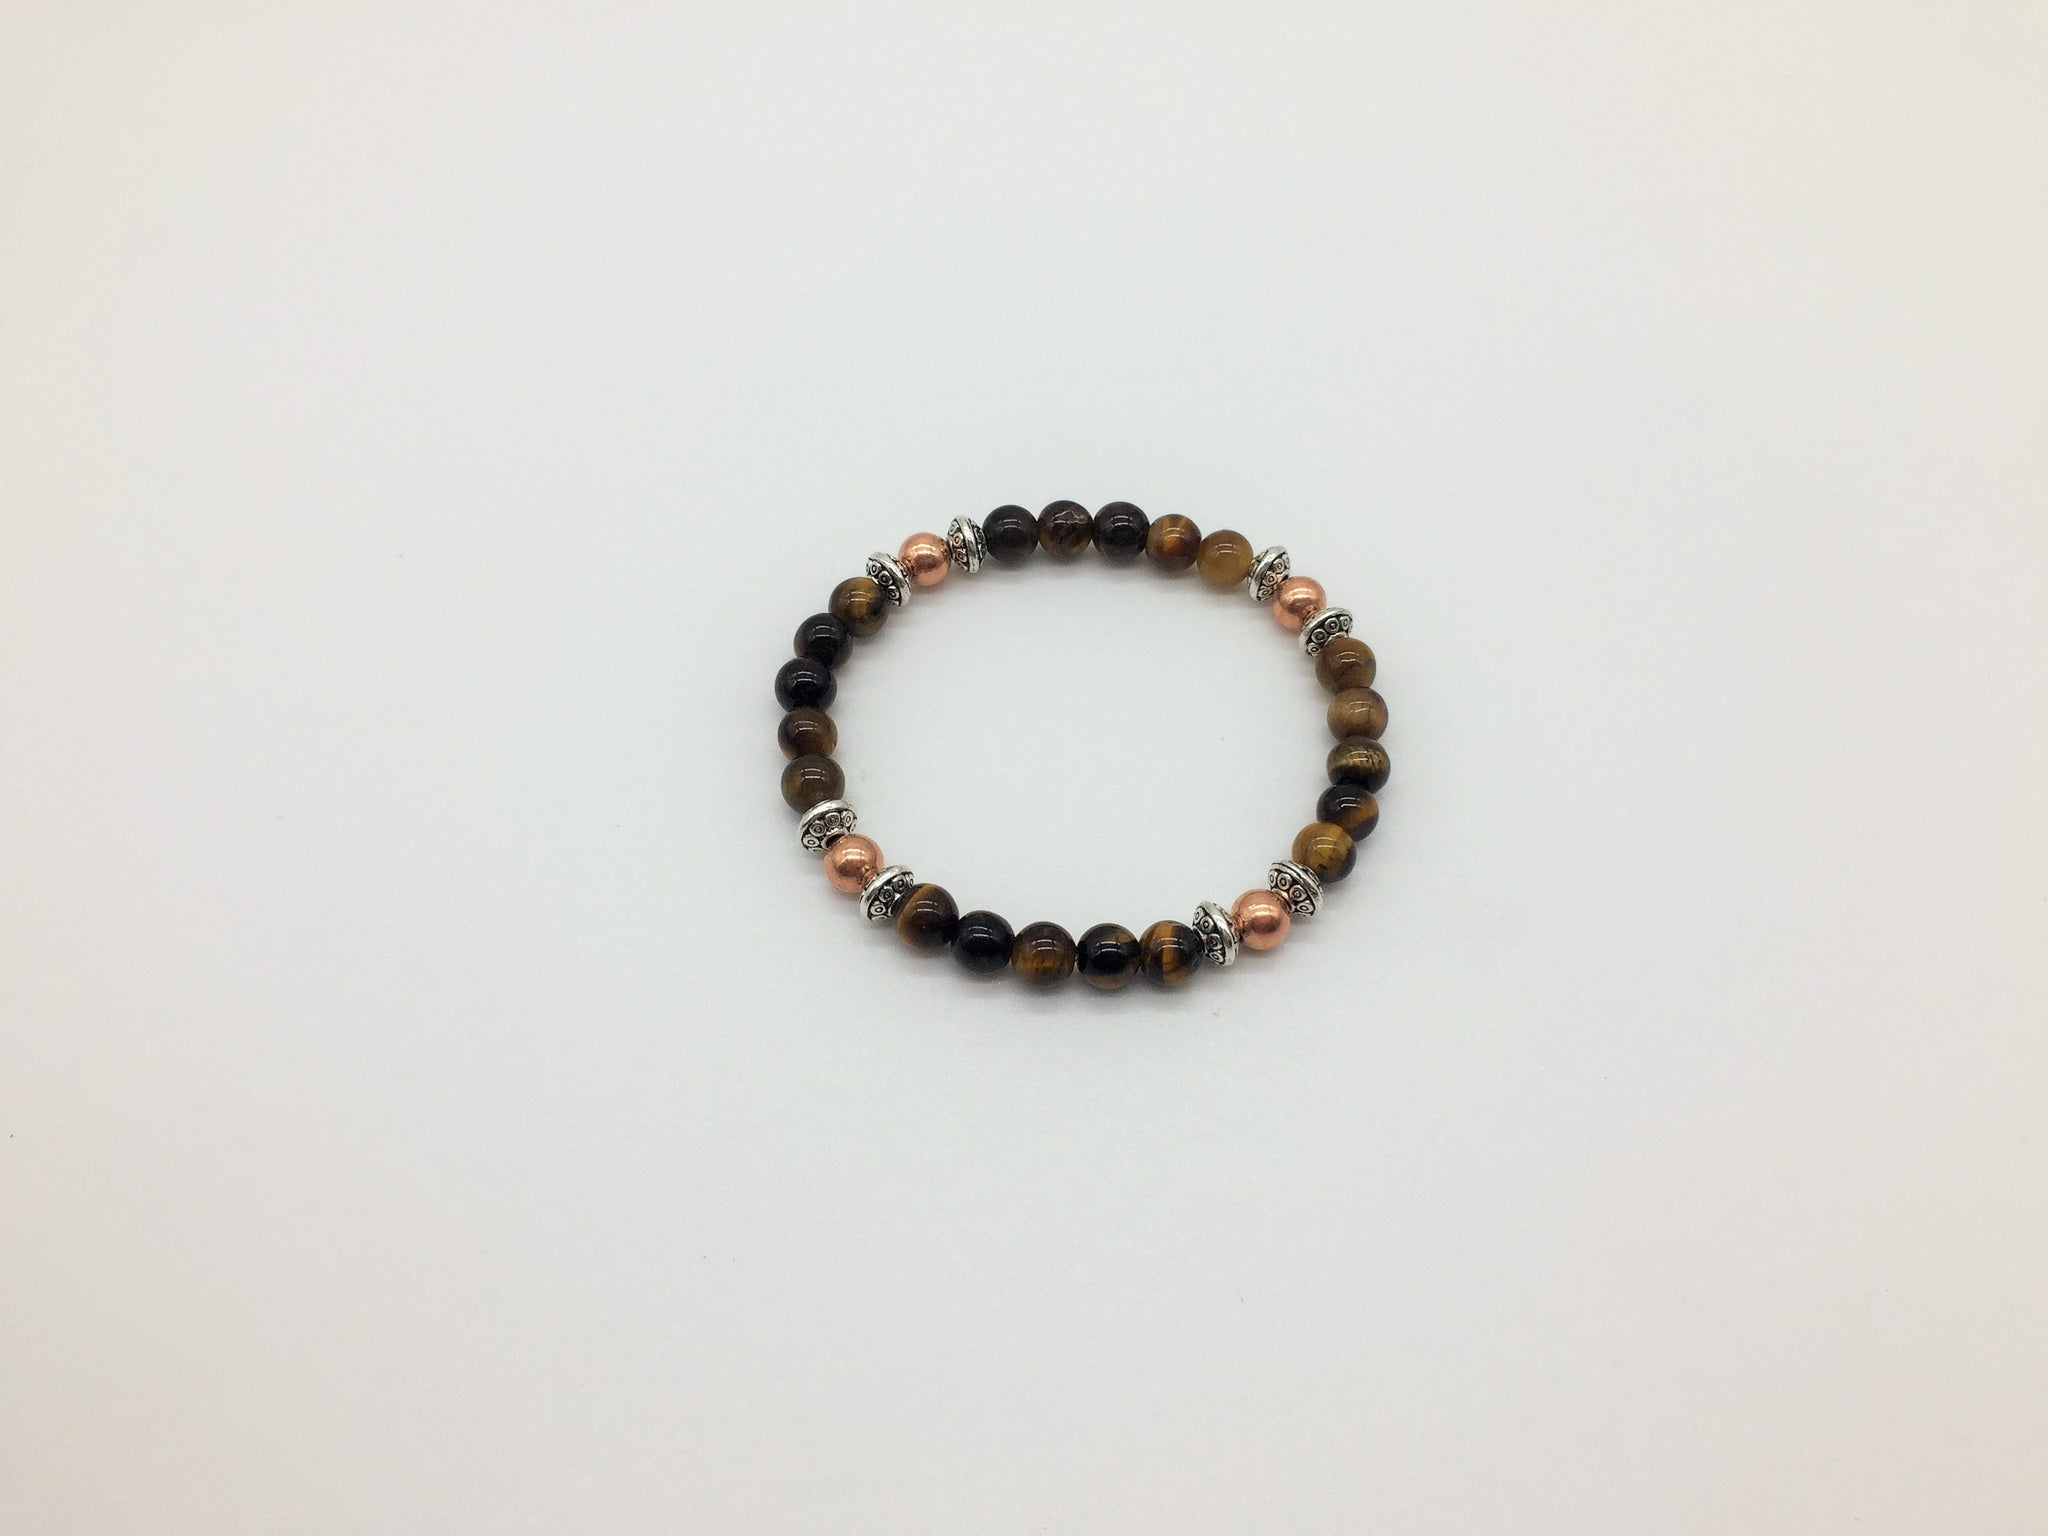 Creativity, Meditation & spirituality Tigers Eye & Copper healing Bracelet